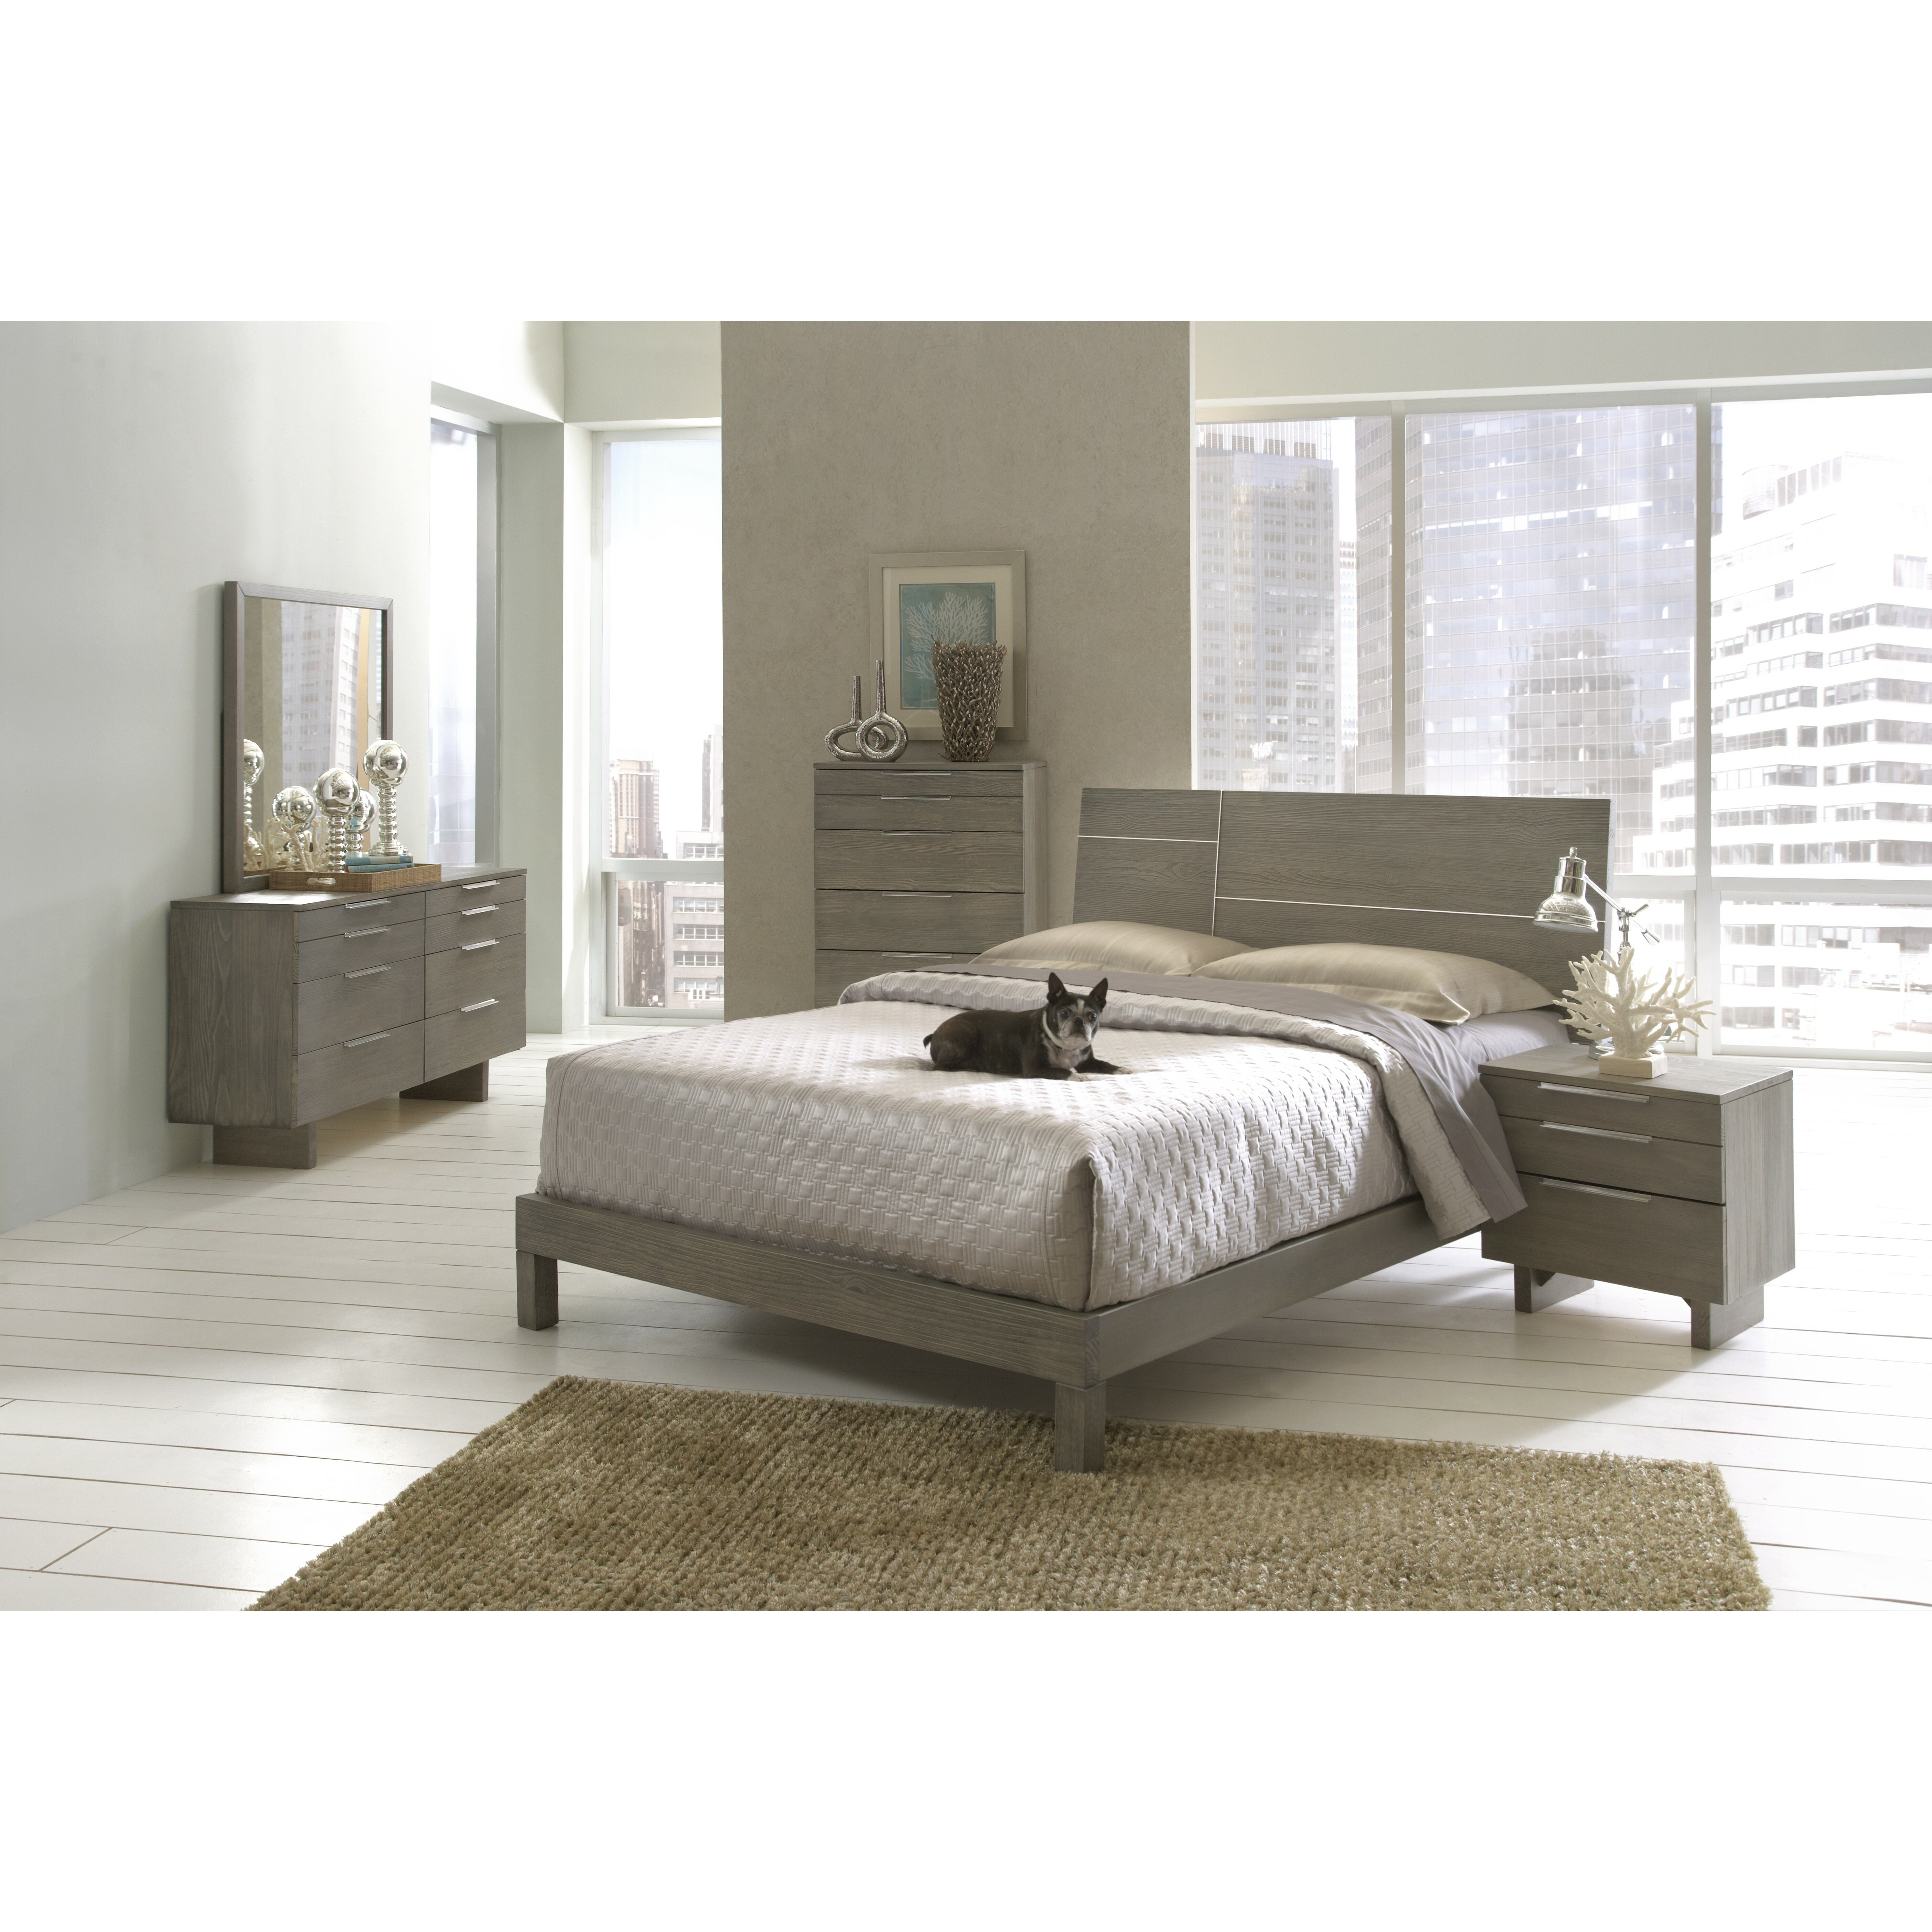 Wildon home violet platform customizable bedroom set for Bedroom sets with mattress